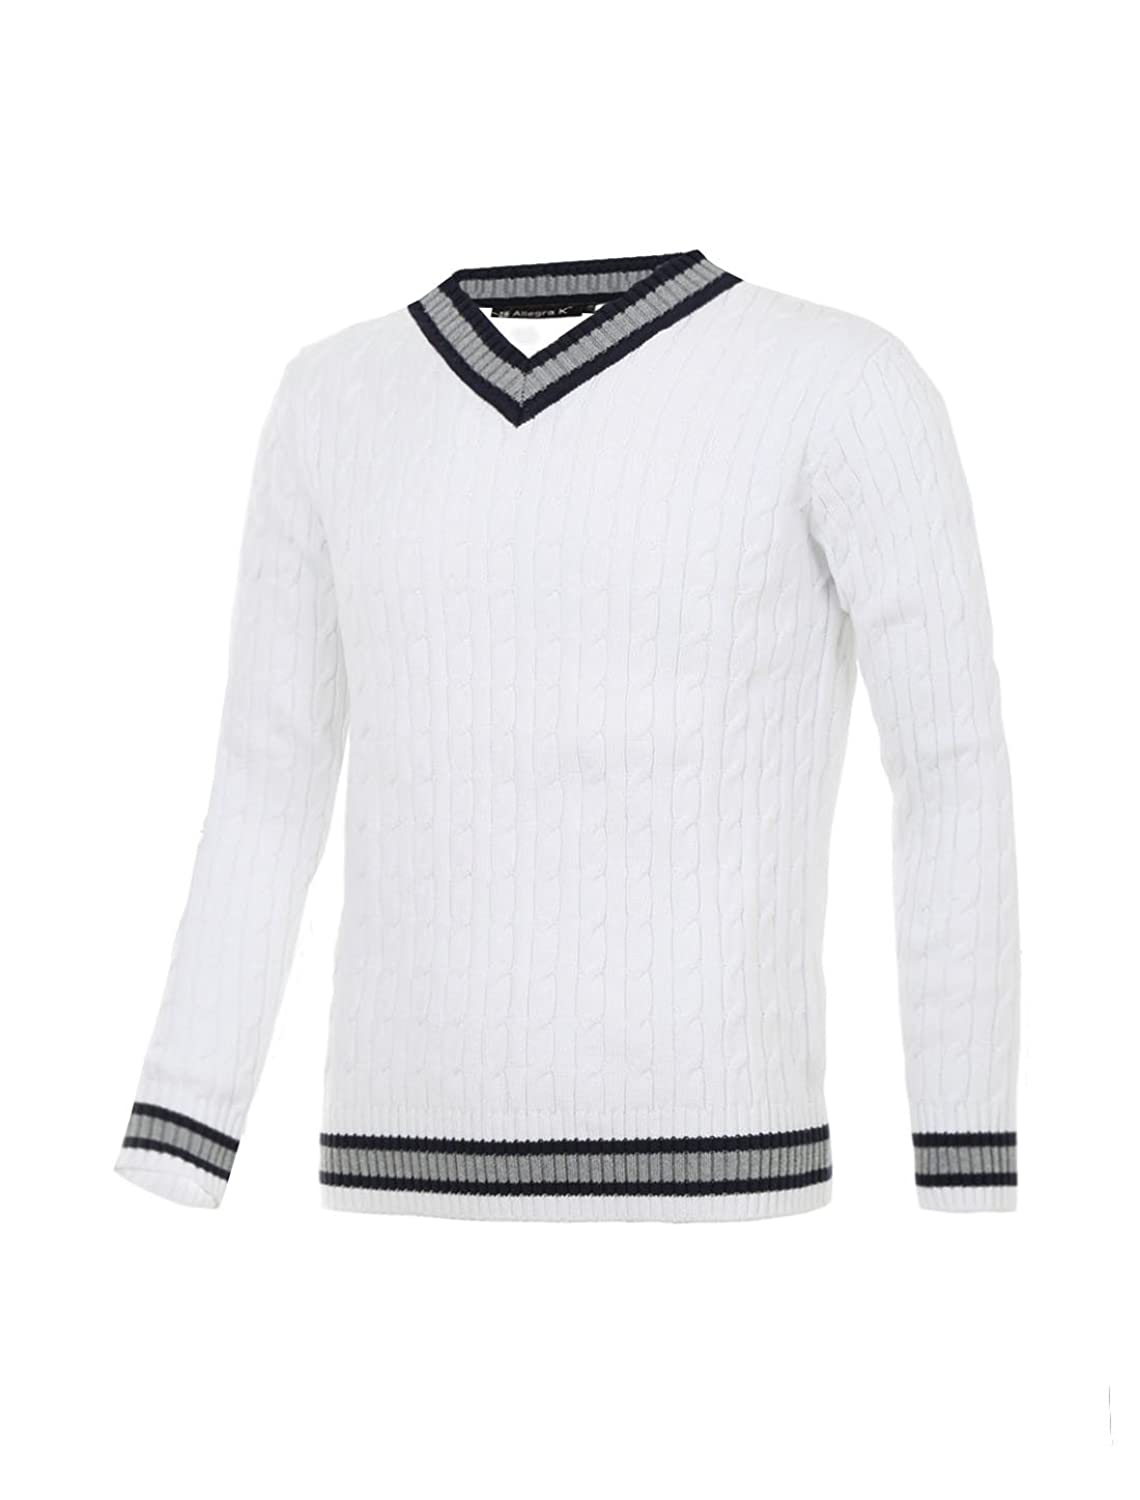 1920s Mens Sweaters, Pullovers, Cardigans Allegra K Men V Neck Cable Pattern Ribbed Long Sleeves Pullover Knitted Sweater $30.50 AT vintagedancer.com